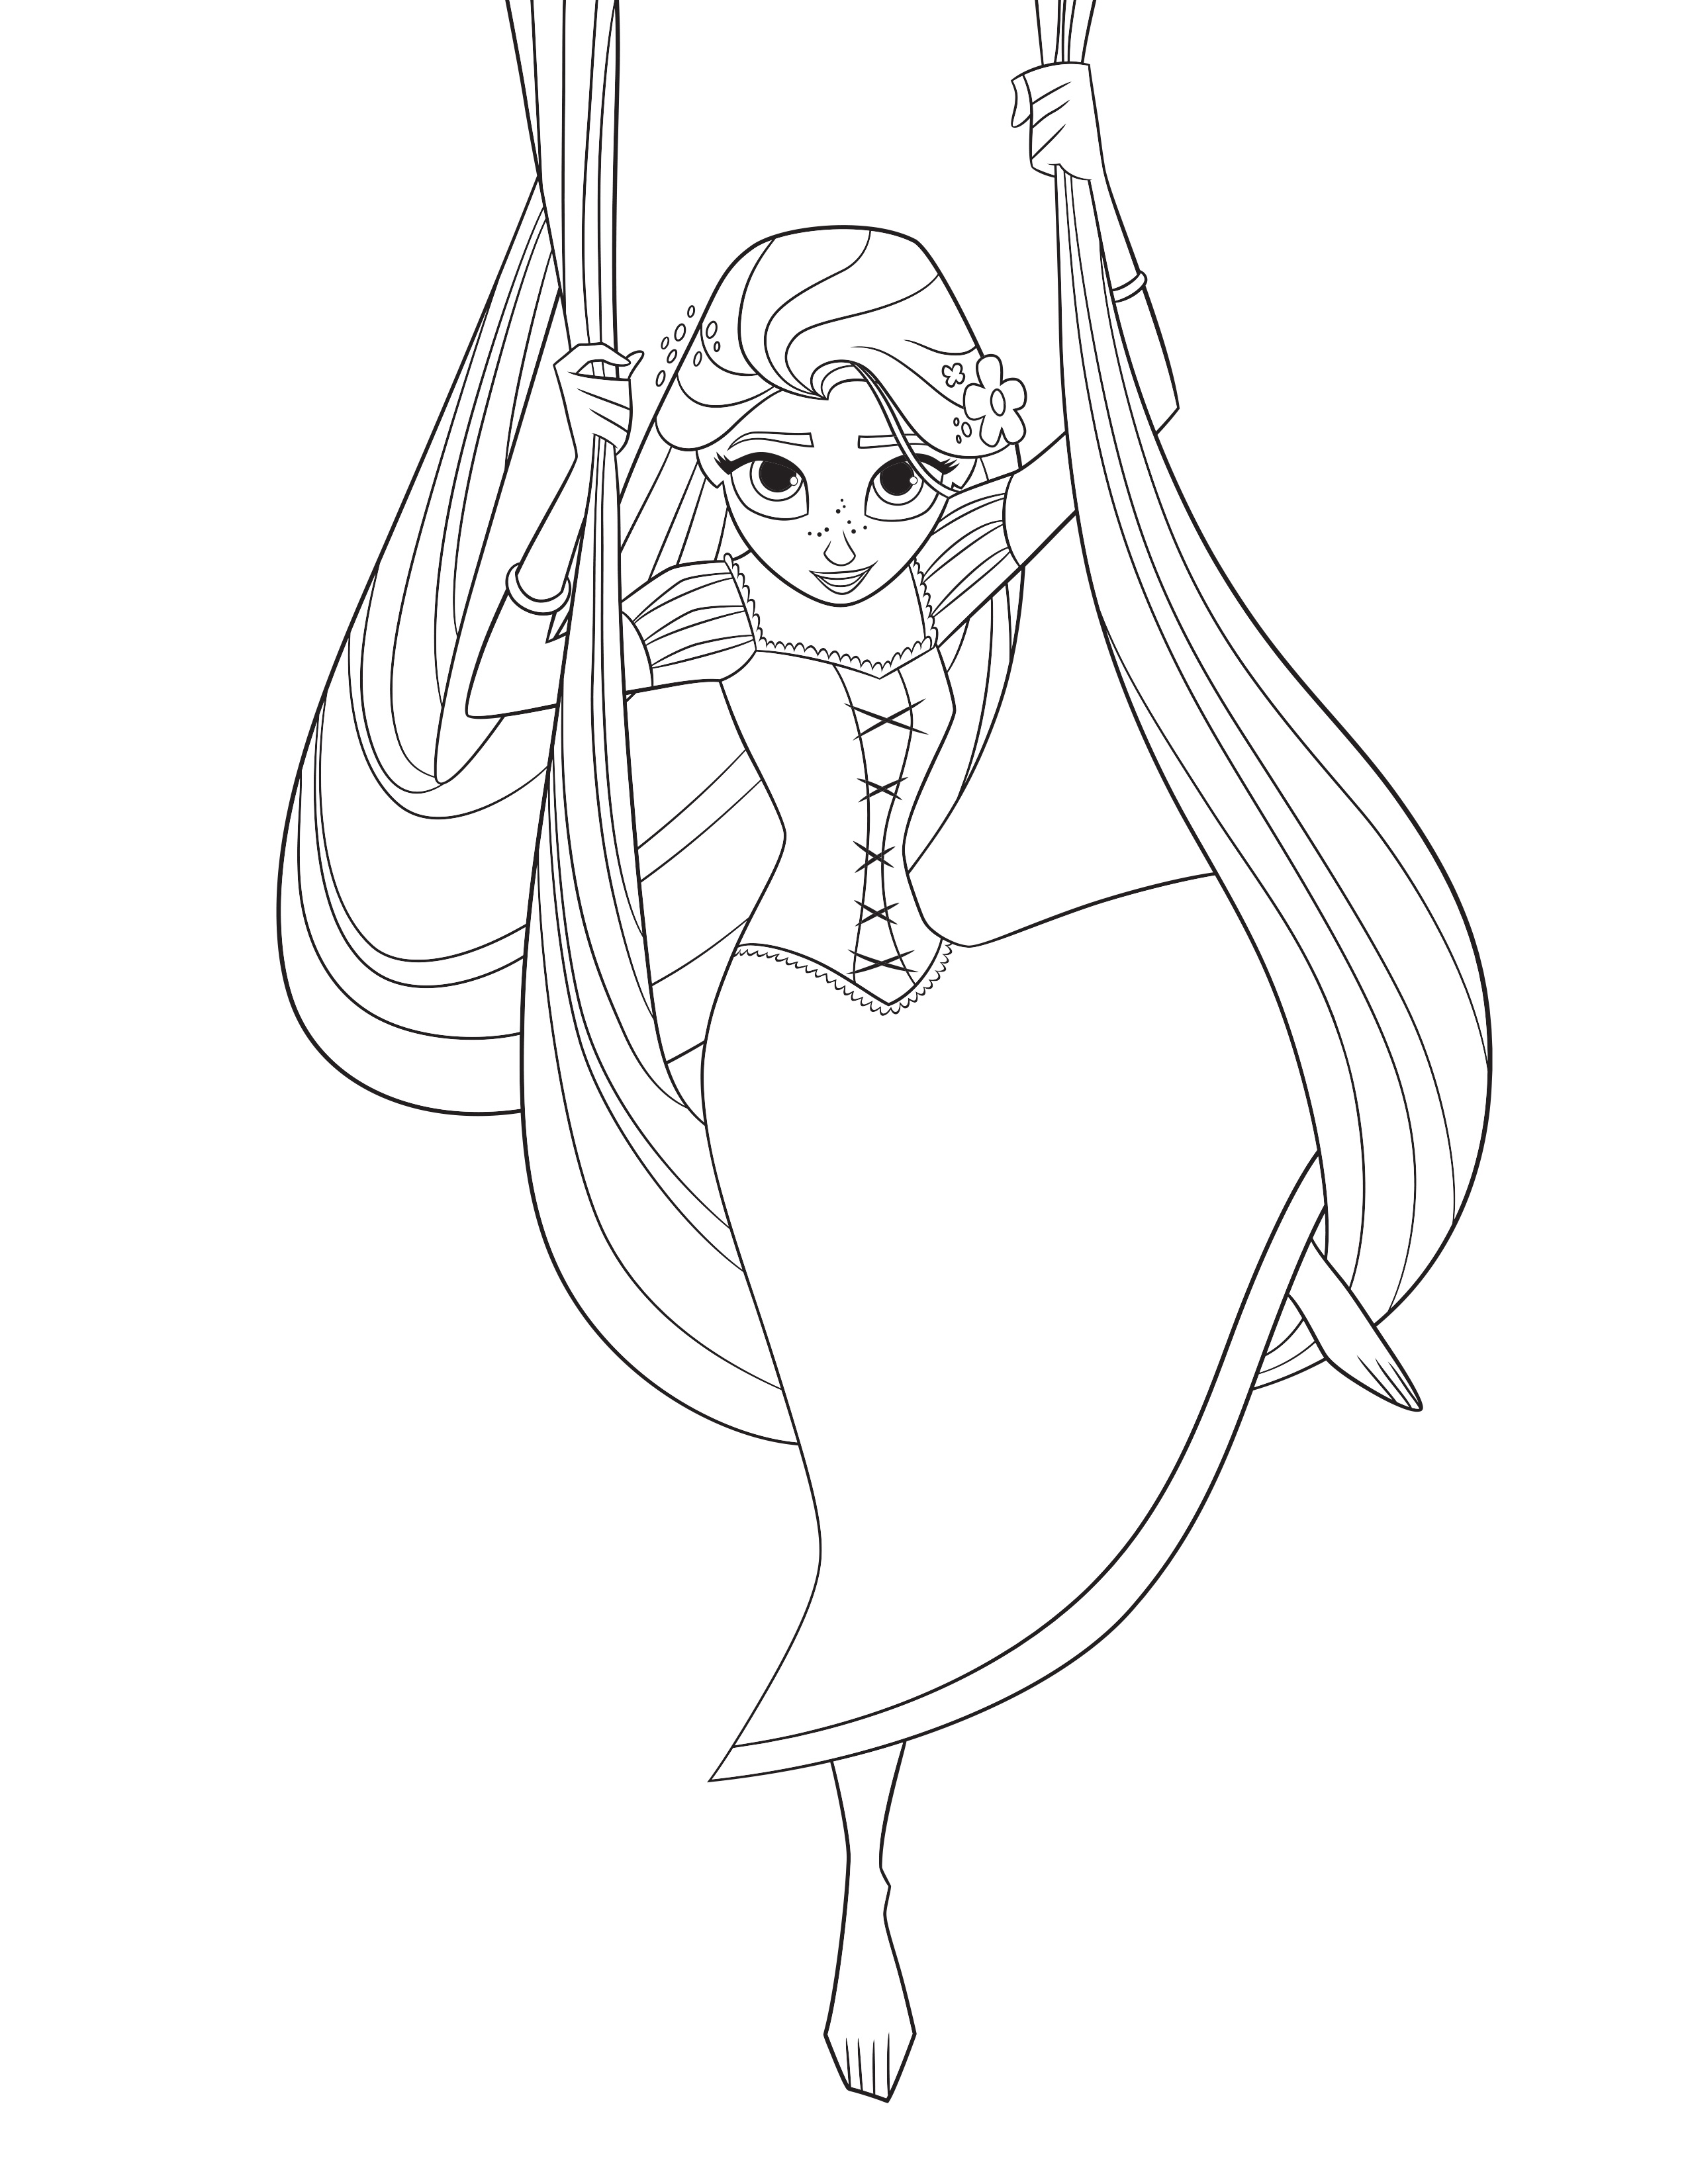 Rapunzel Coloring Pages Tangled The Series Youloveit   Coloring Pages - Free Printable Tangled